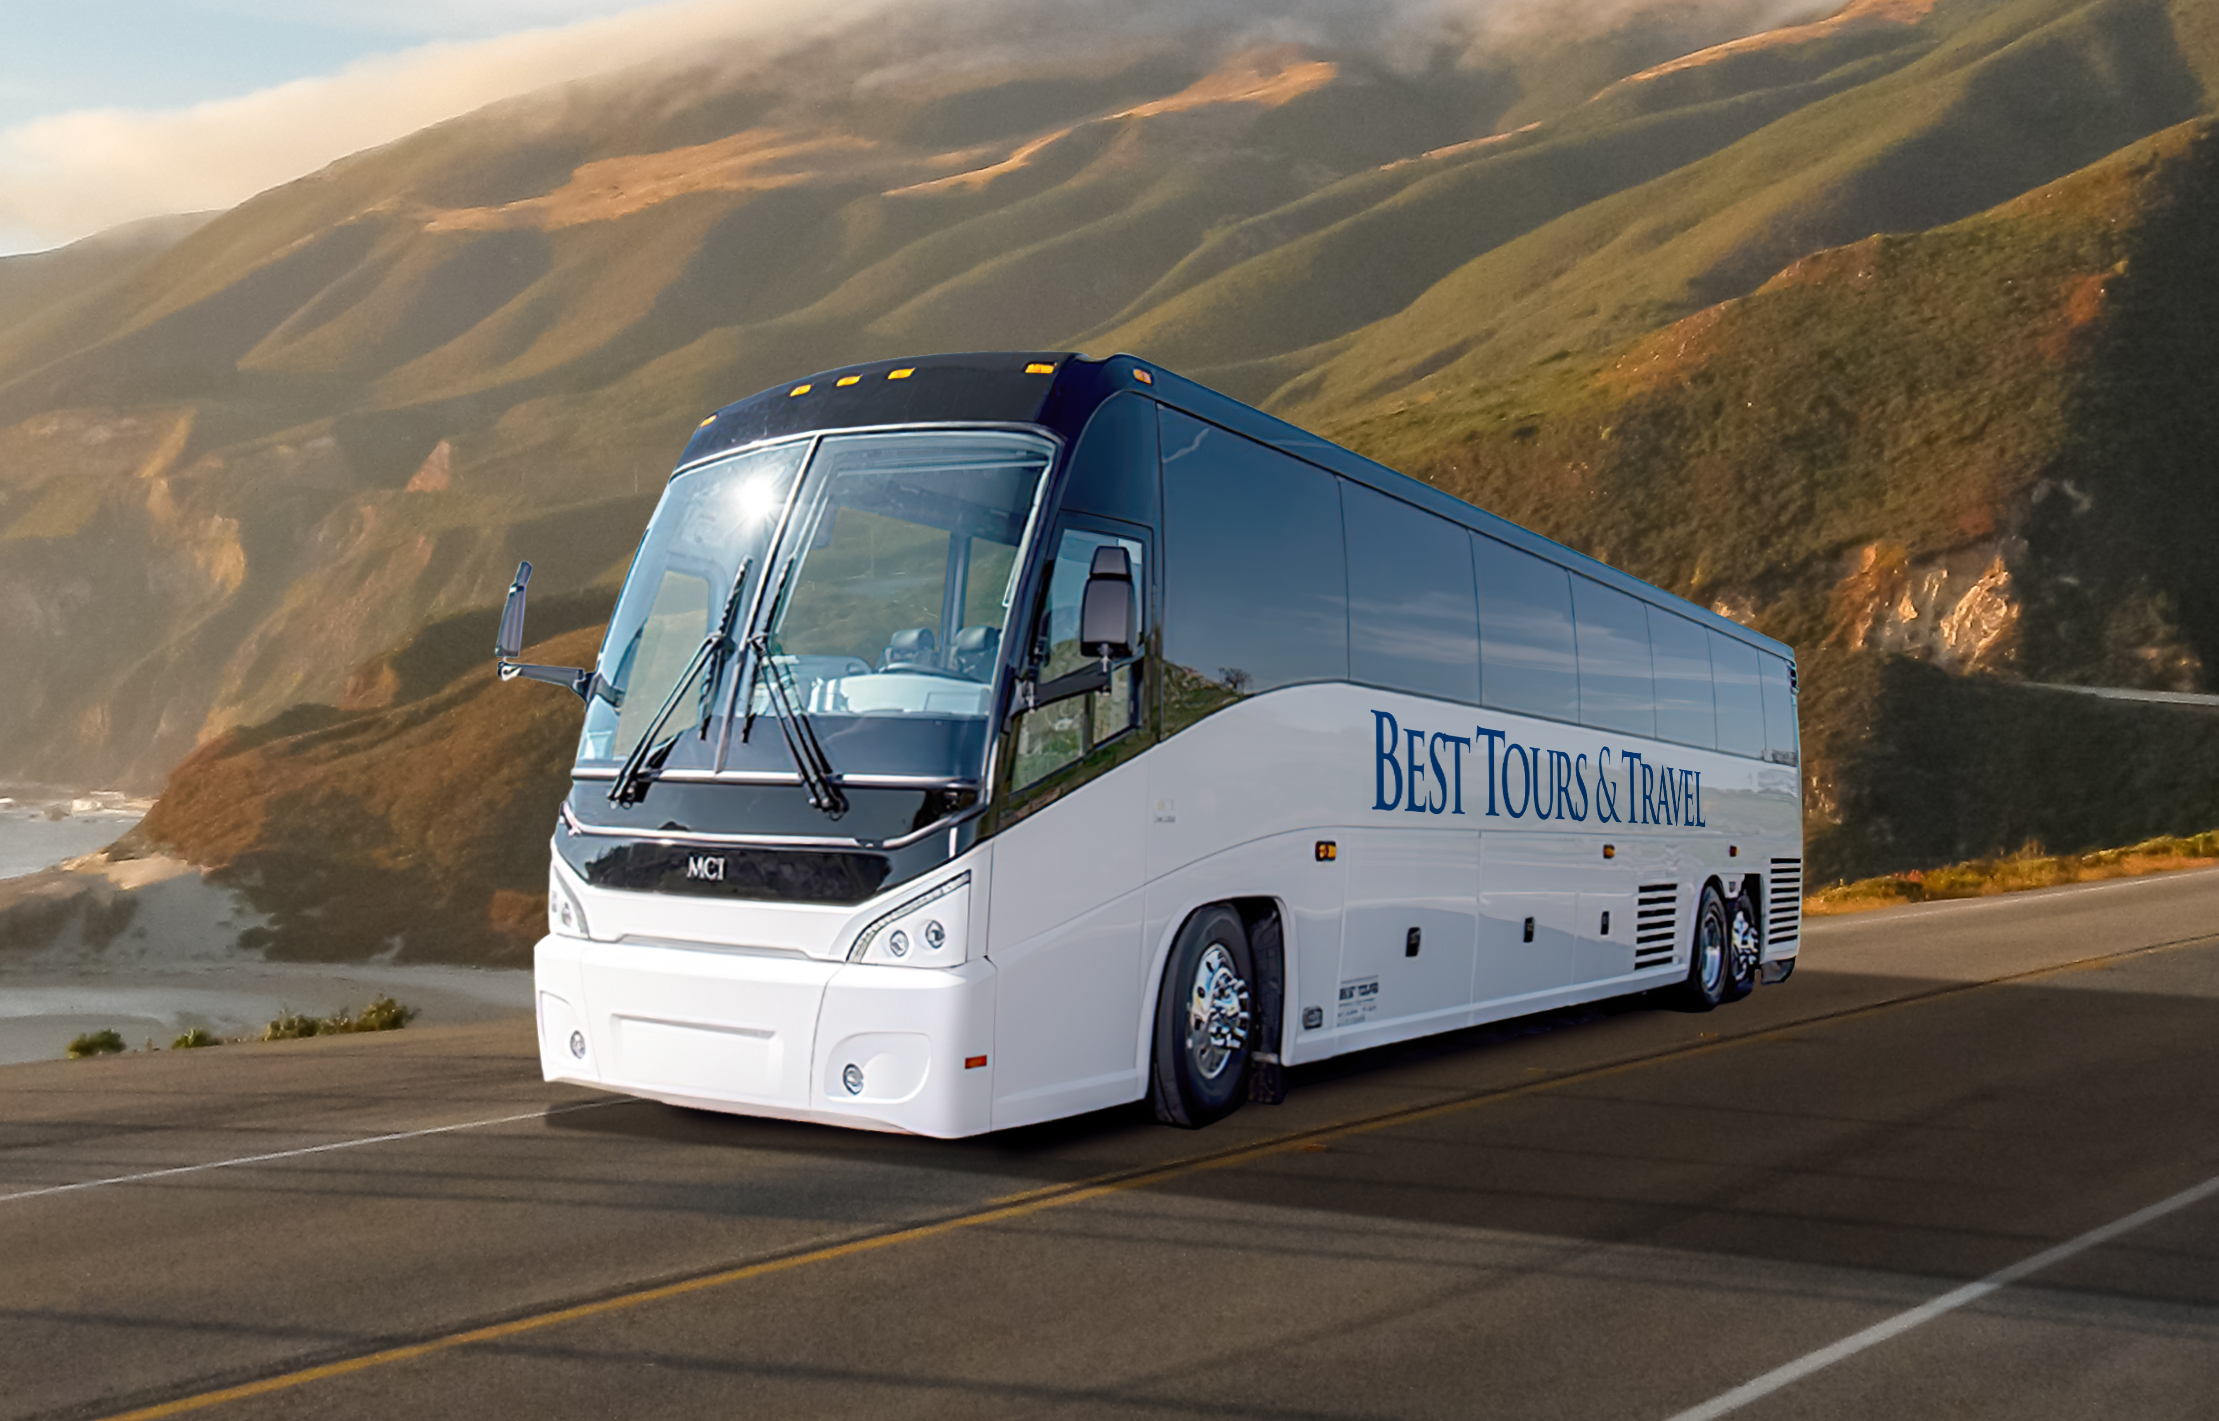 Best Tours & Travel Reopens Strong After Tireless 2020 Keeping Customers, Lawmakers, and A Changing Traveling Public Close to Its Business